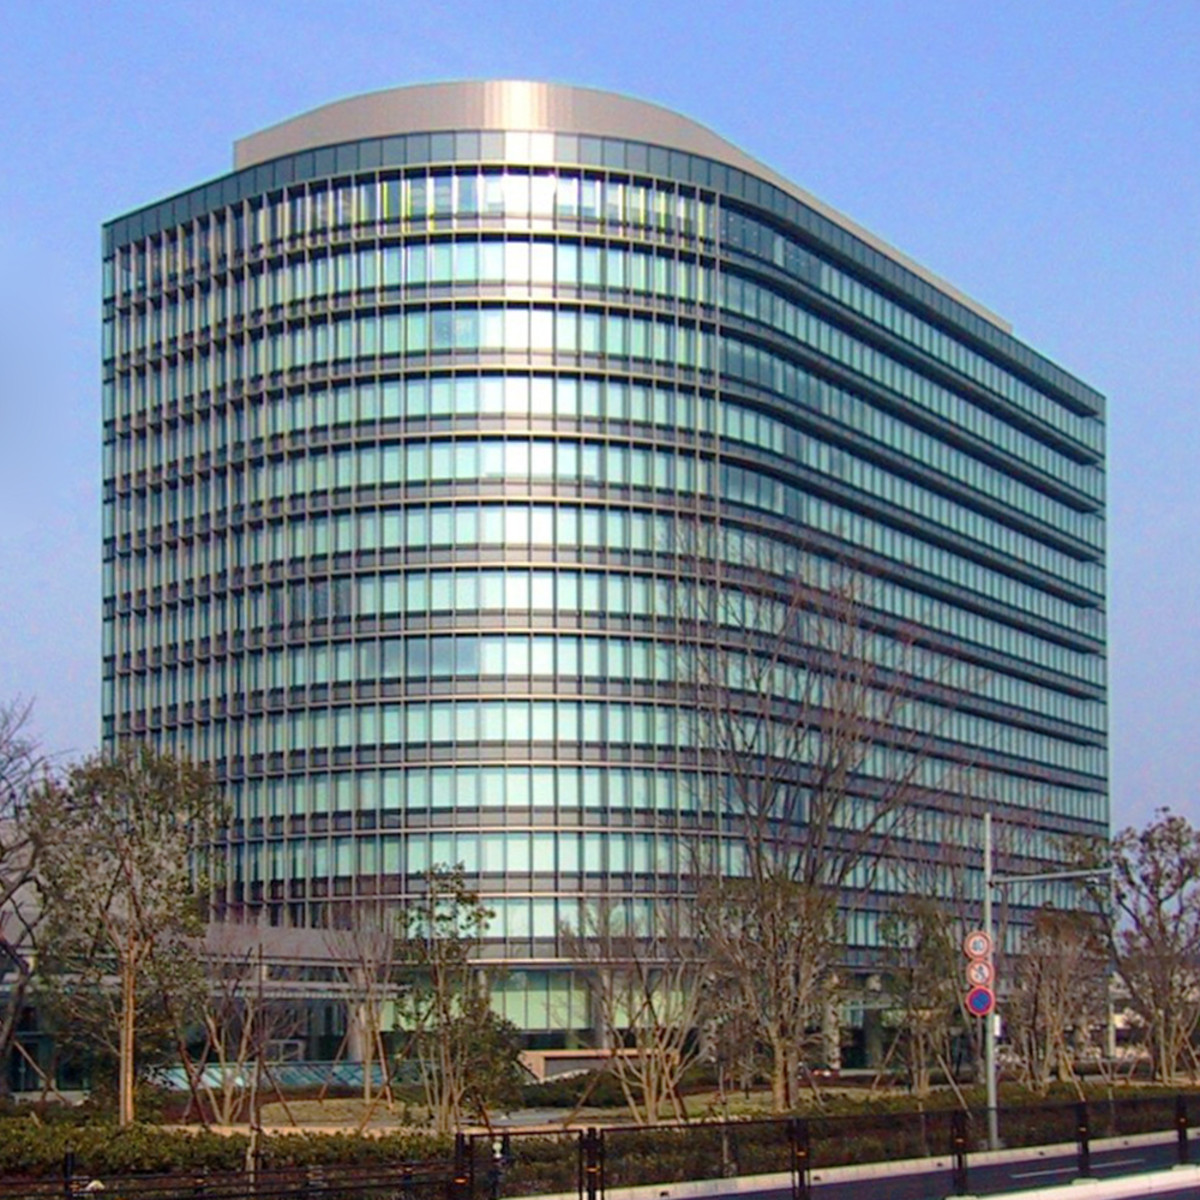 Toyota headquarters (one of the largest multinational corporation in the world)